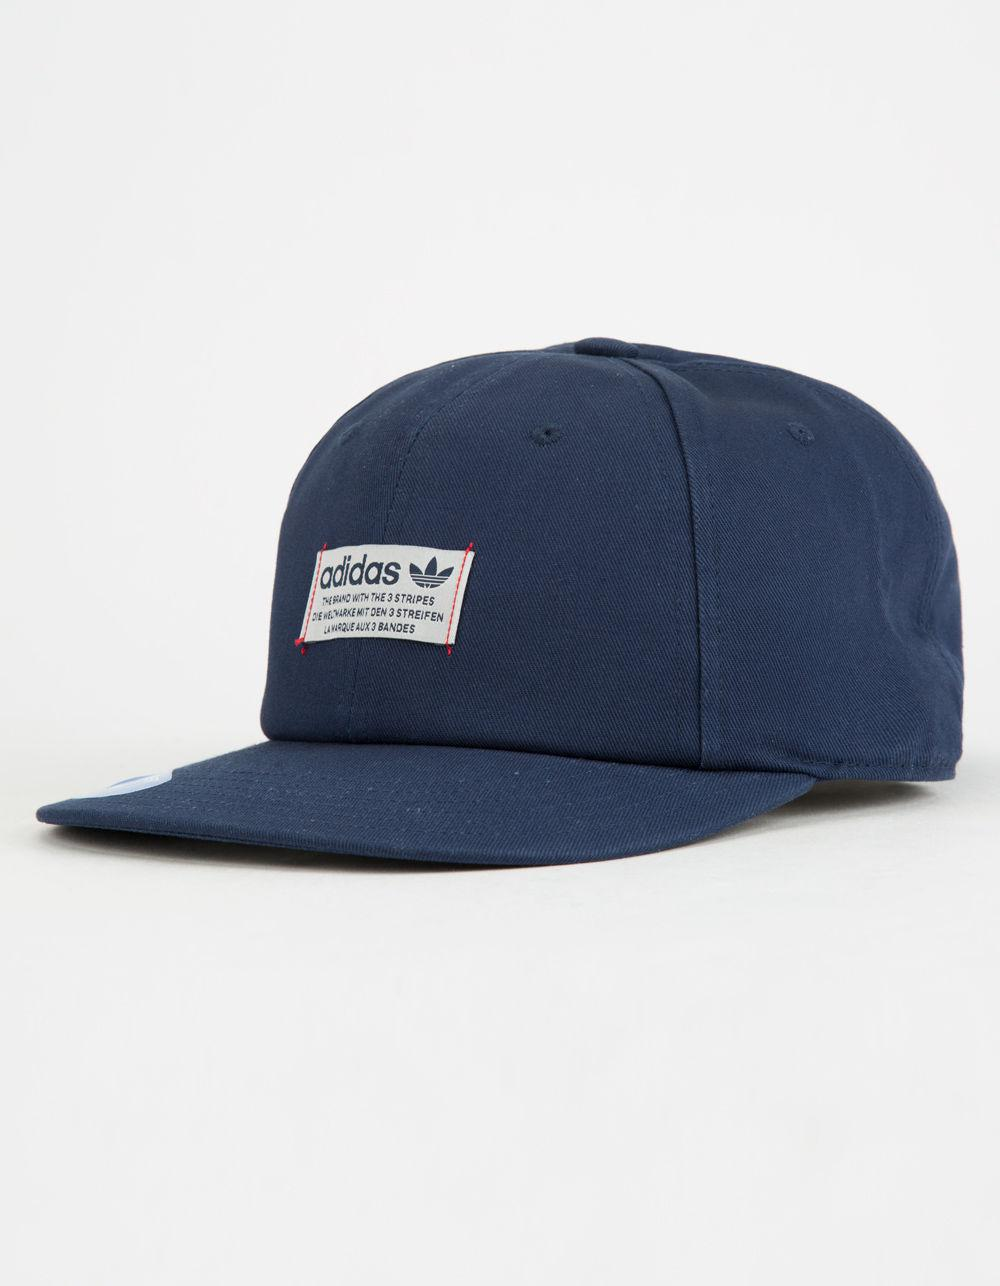 be11d7ecca2 ... Adidas - Blue Originals Relaxed Base Mens Strapback Hat for Men - Lyst.